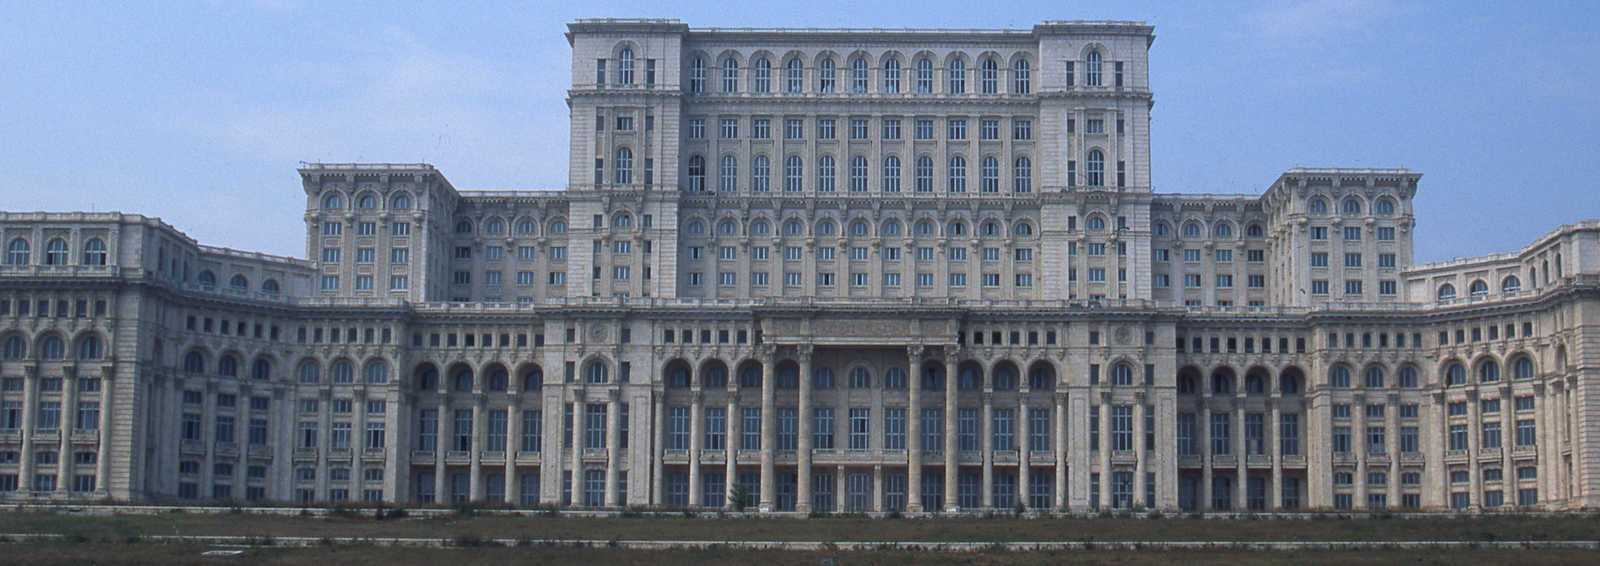 Civic Centre (Palace of the People), Bucharest